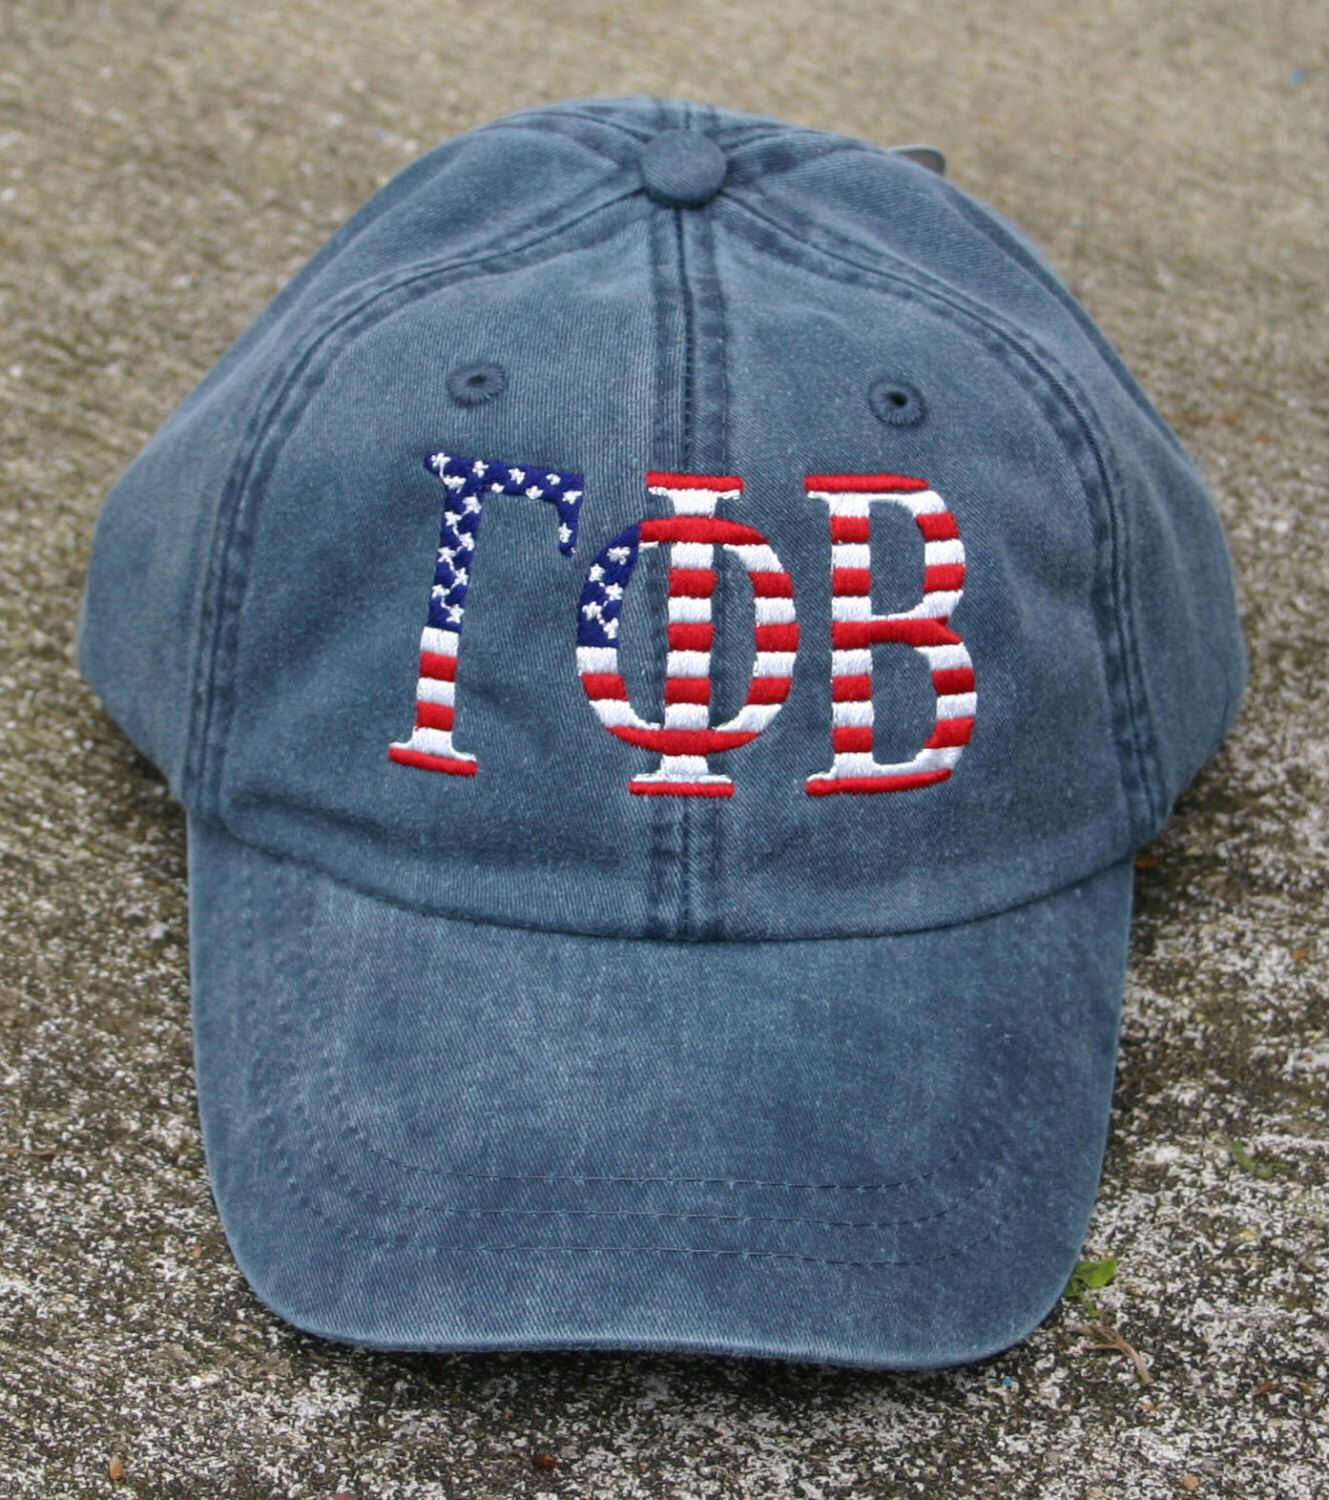 Gamma phi beta american flag cap by megagreek on etsy httpswww gamma phi beta american flag cap by megagreek on etsy https biocorpaavc Images